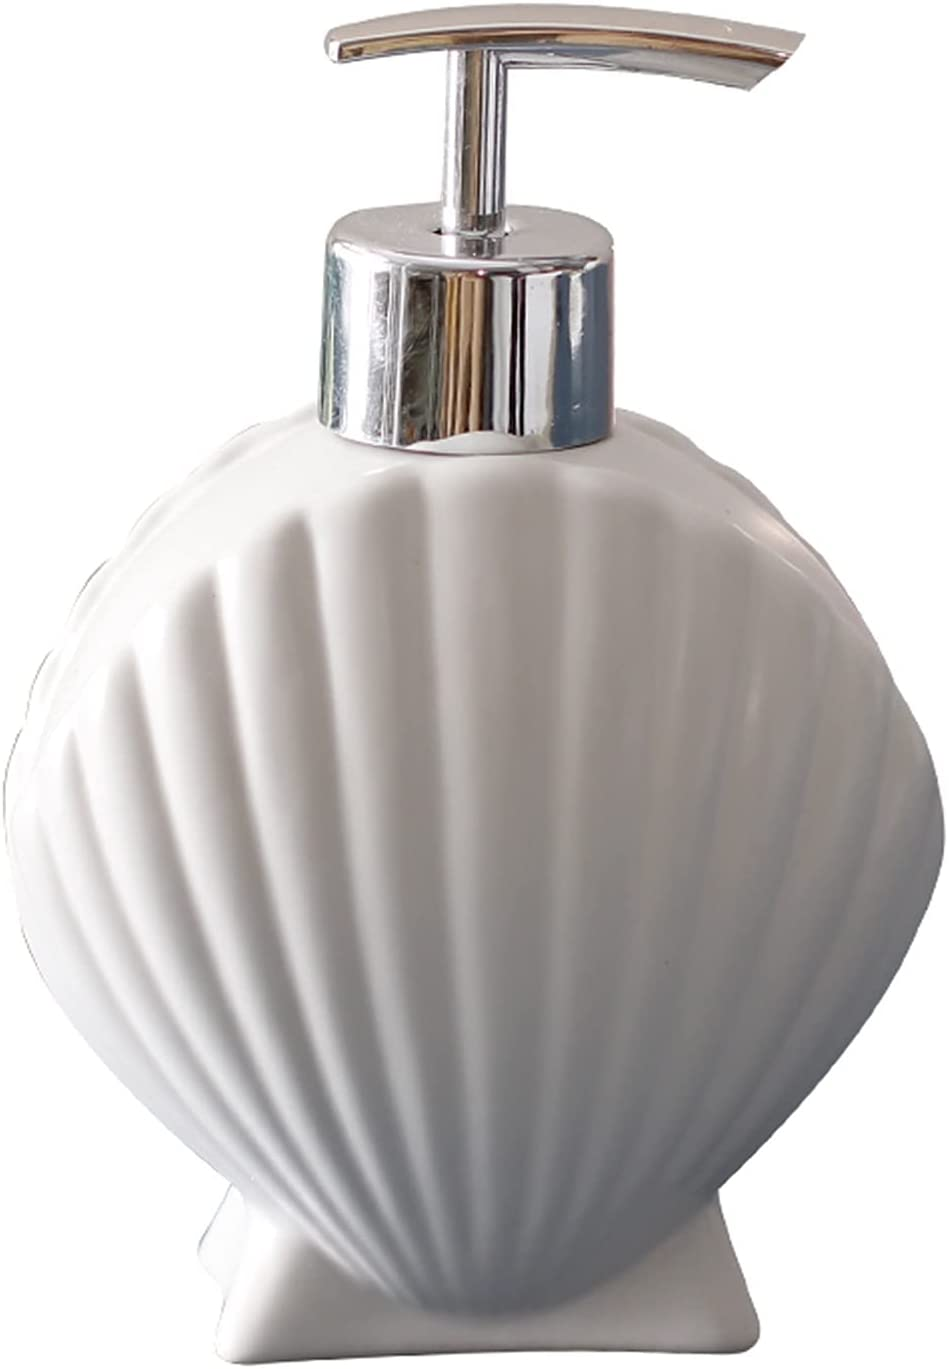 Soap Recommended Dispenser Bottle Lotion Small Capacity Seasonal Wrap Introduction Ceramic So